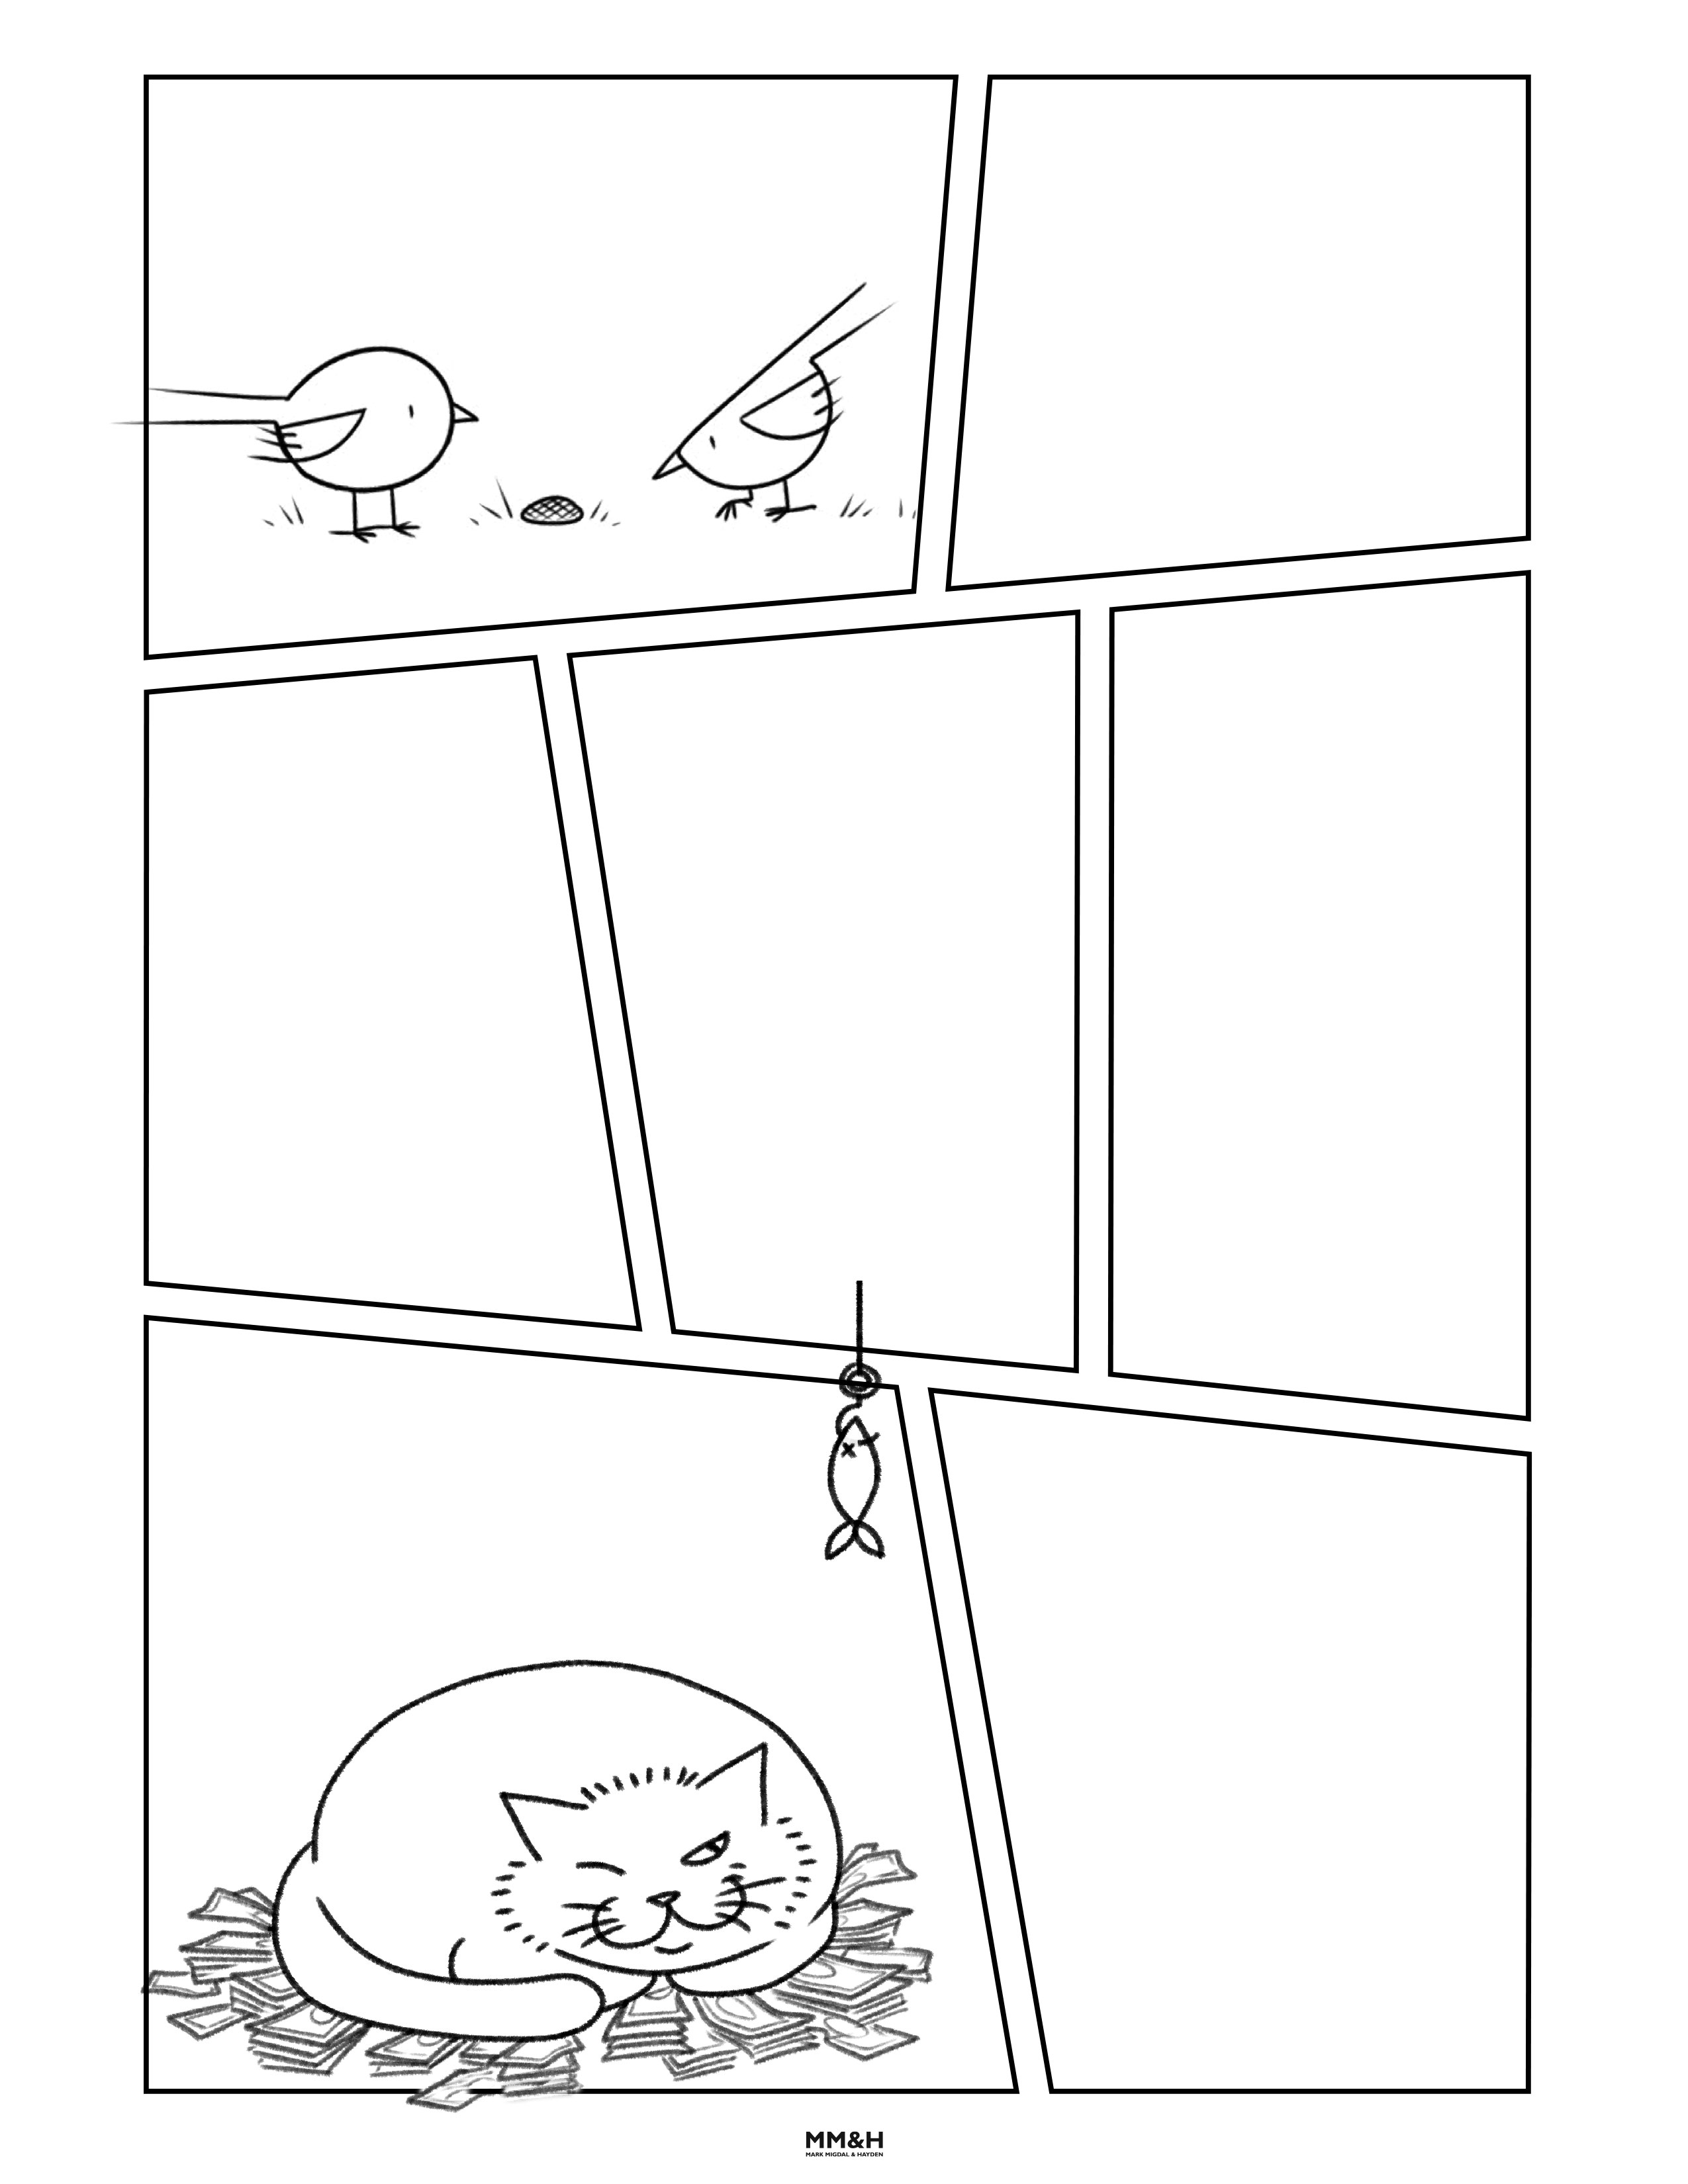 Comic-challenge-page-10 download